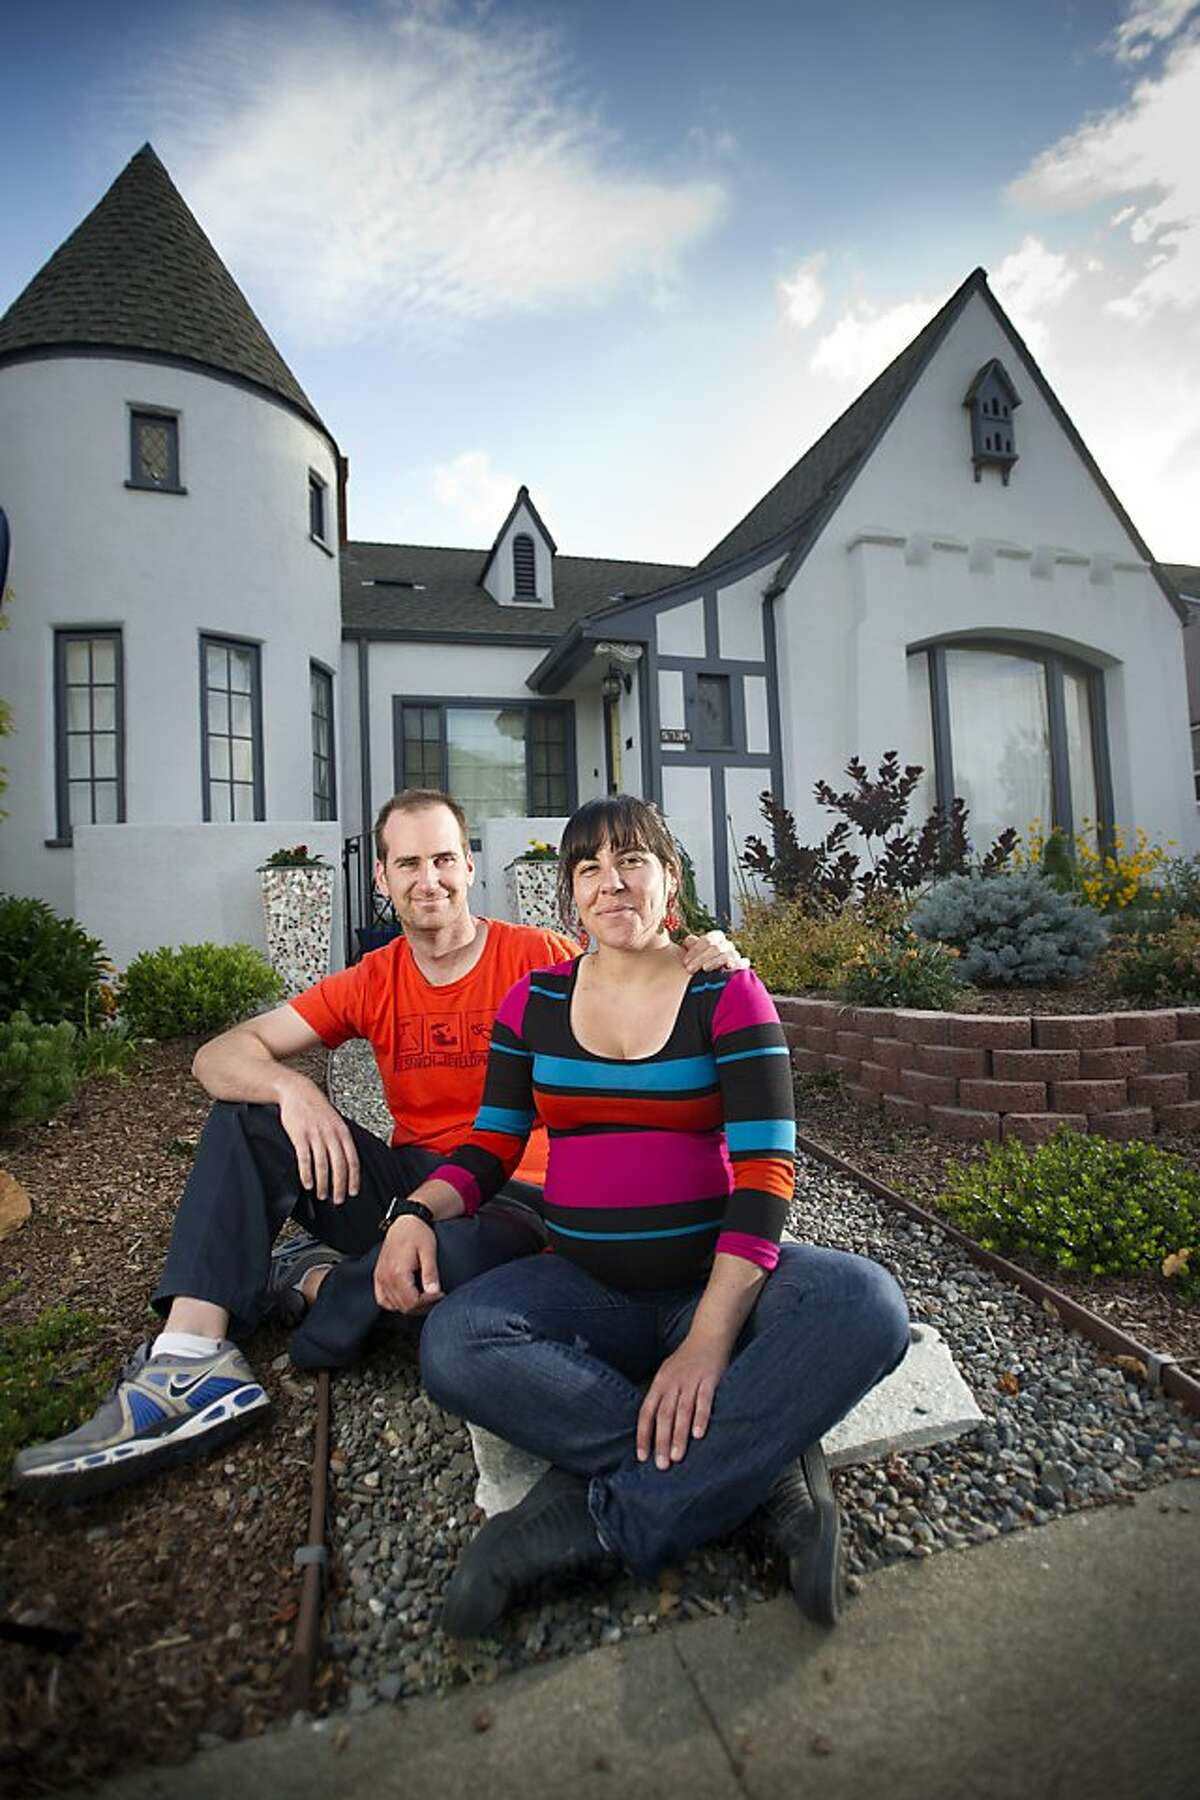 Meryl Phillips and Chris Miller sit outside their Oakland, Calif., home on Thursday, May 15, 2013. The couple recounts their do-it-yourself renovation on a blog called The Picardy Project.